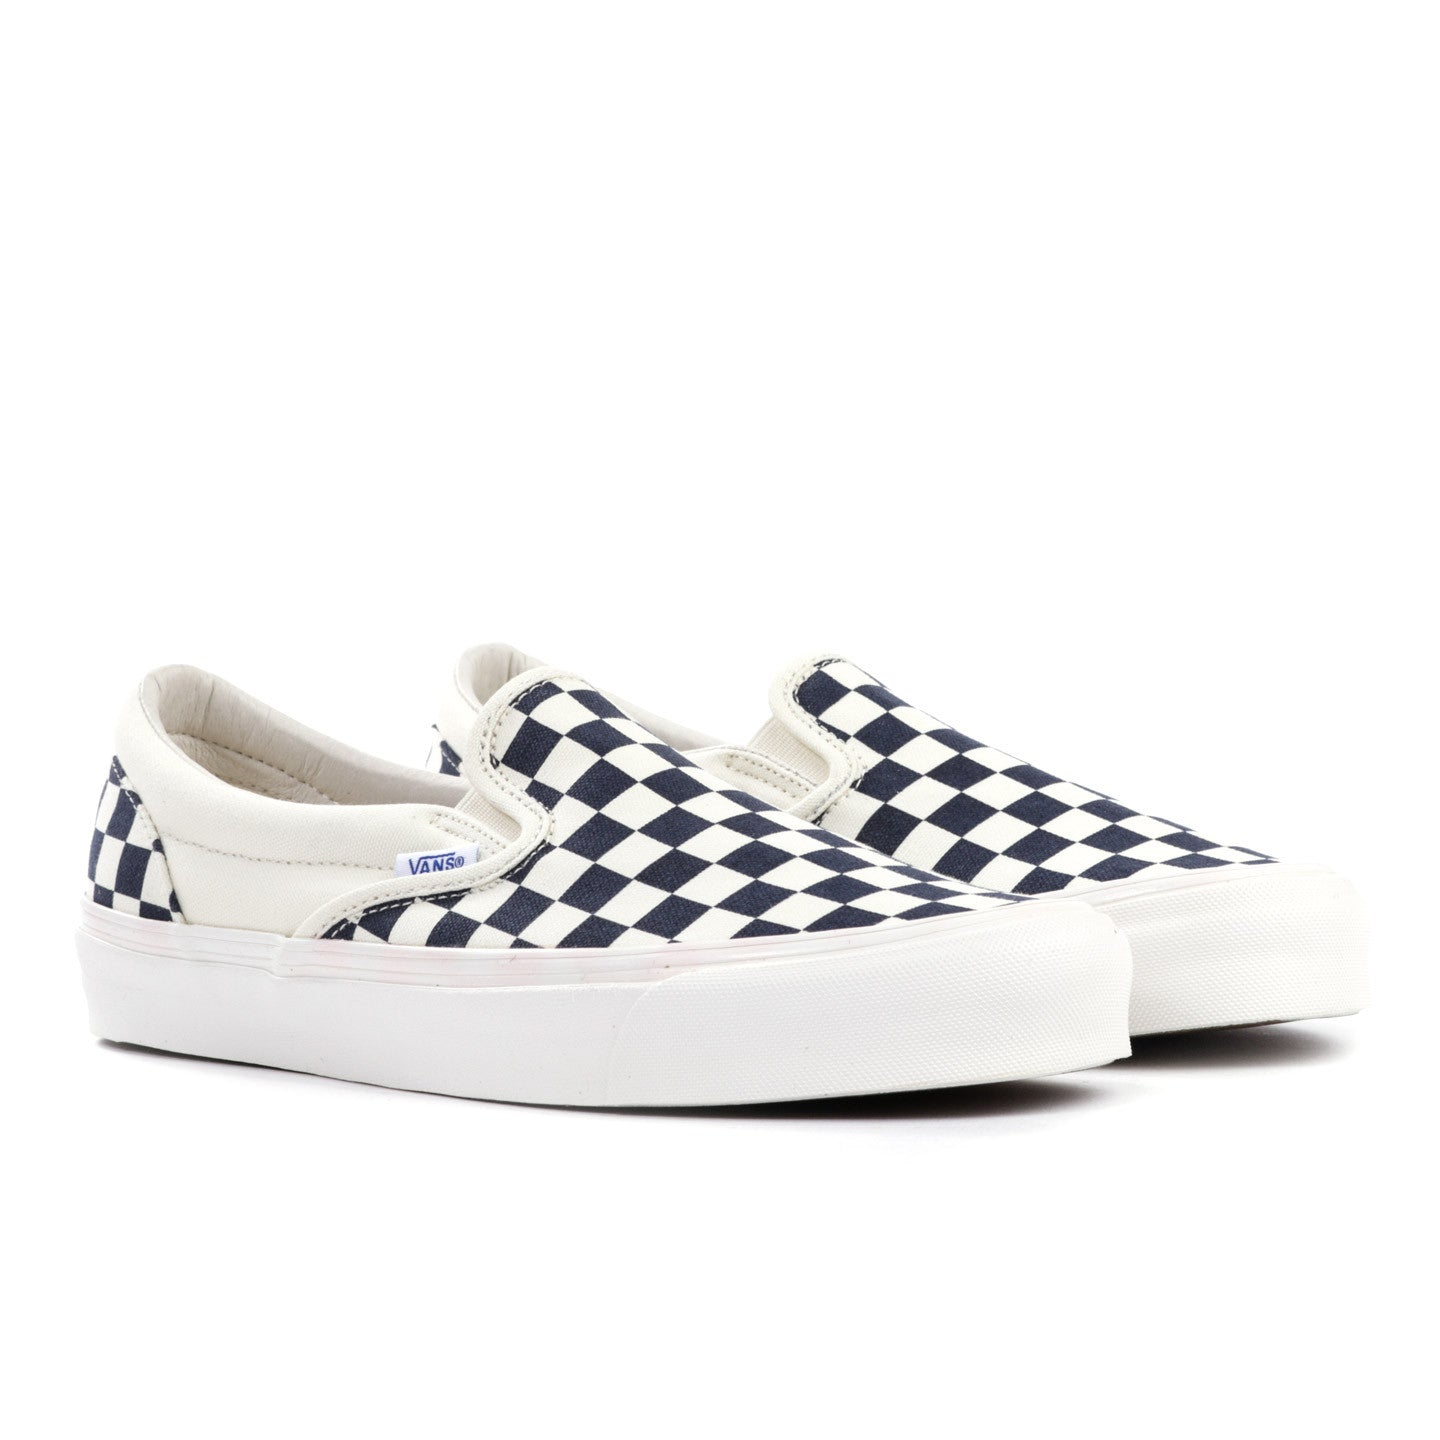 VAULT BY VANS OG CLASSIC SLIP-ON LX NAVY CHECKERBOARD CANVAS